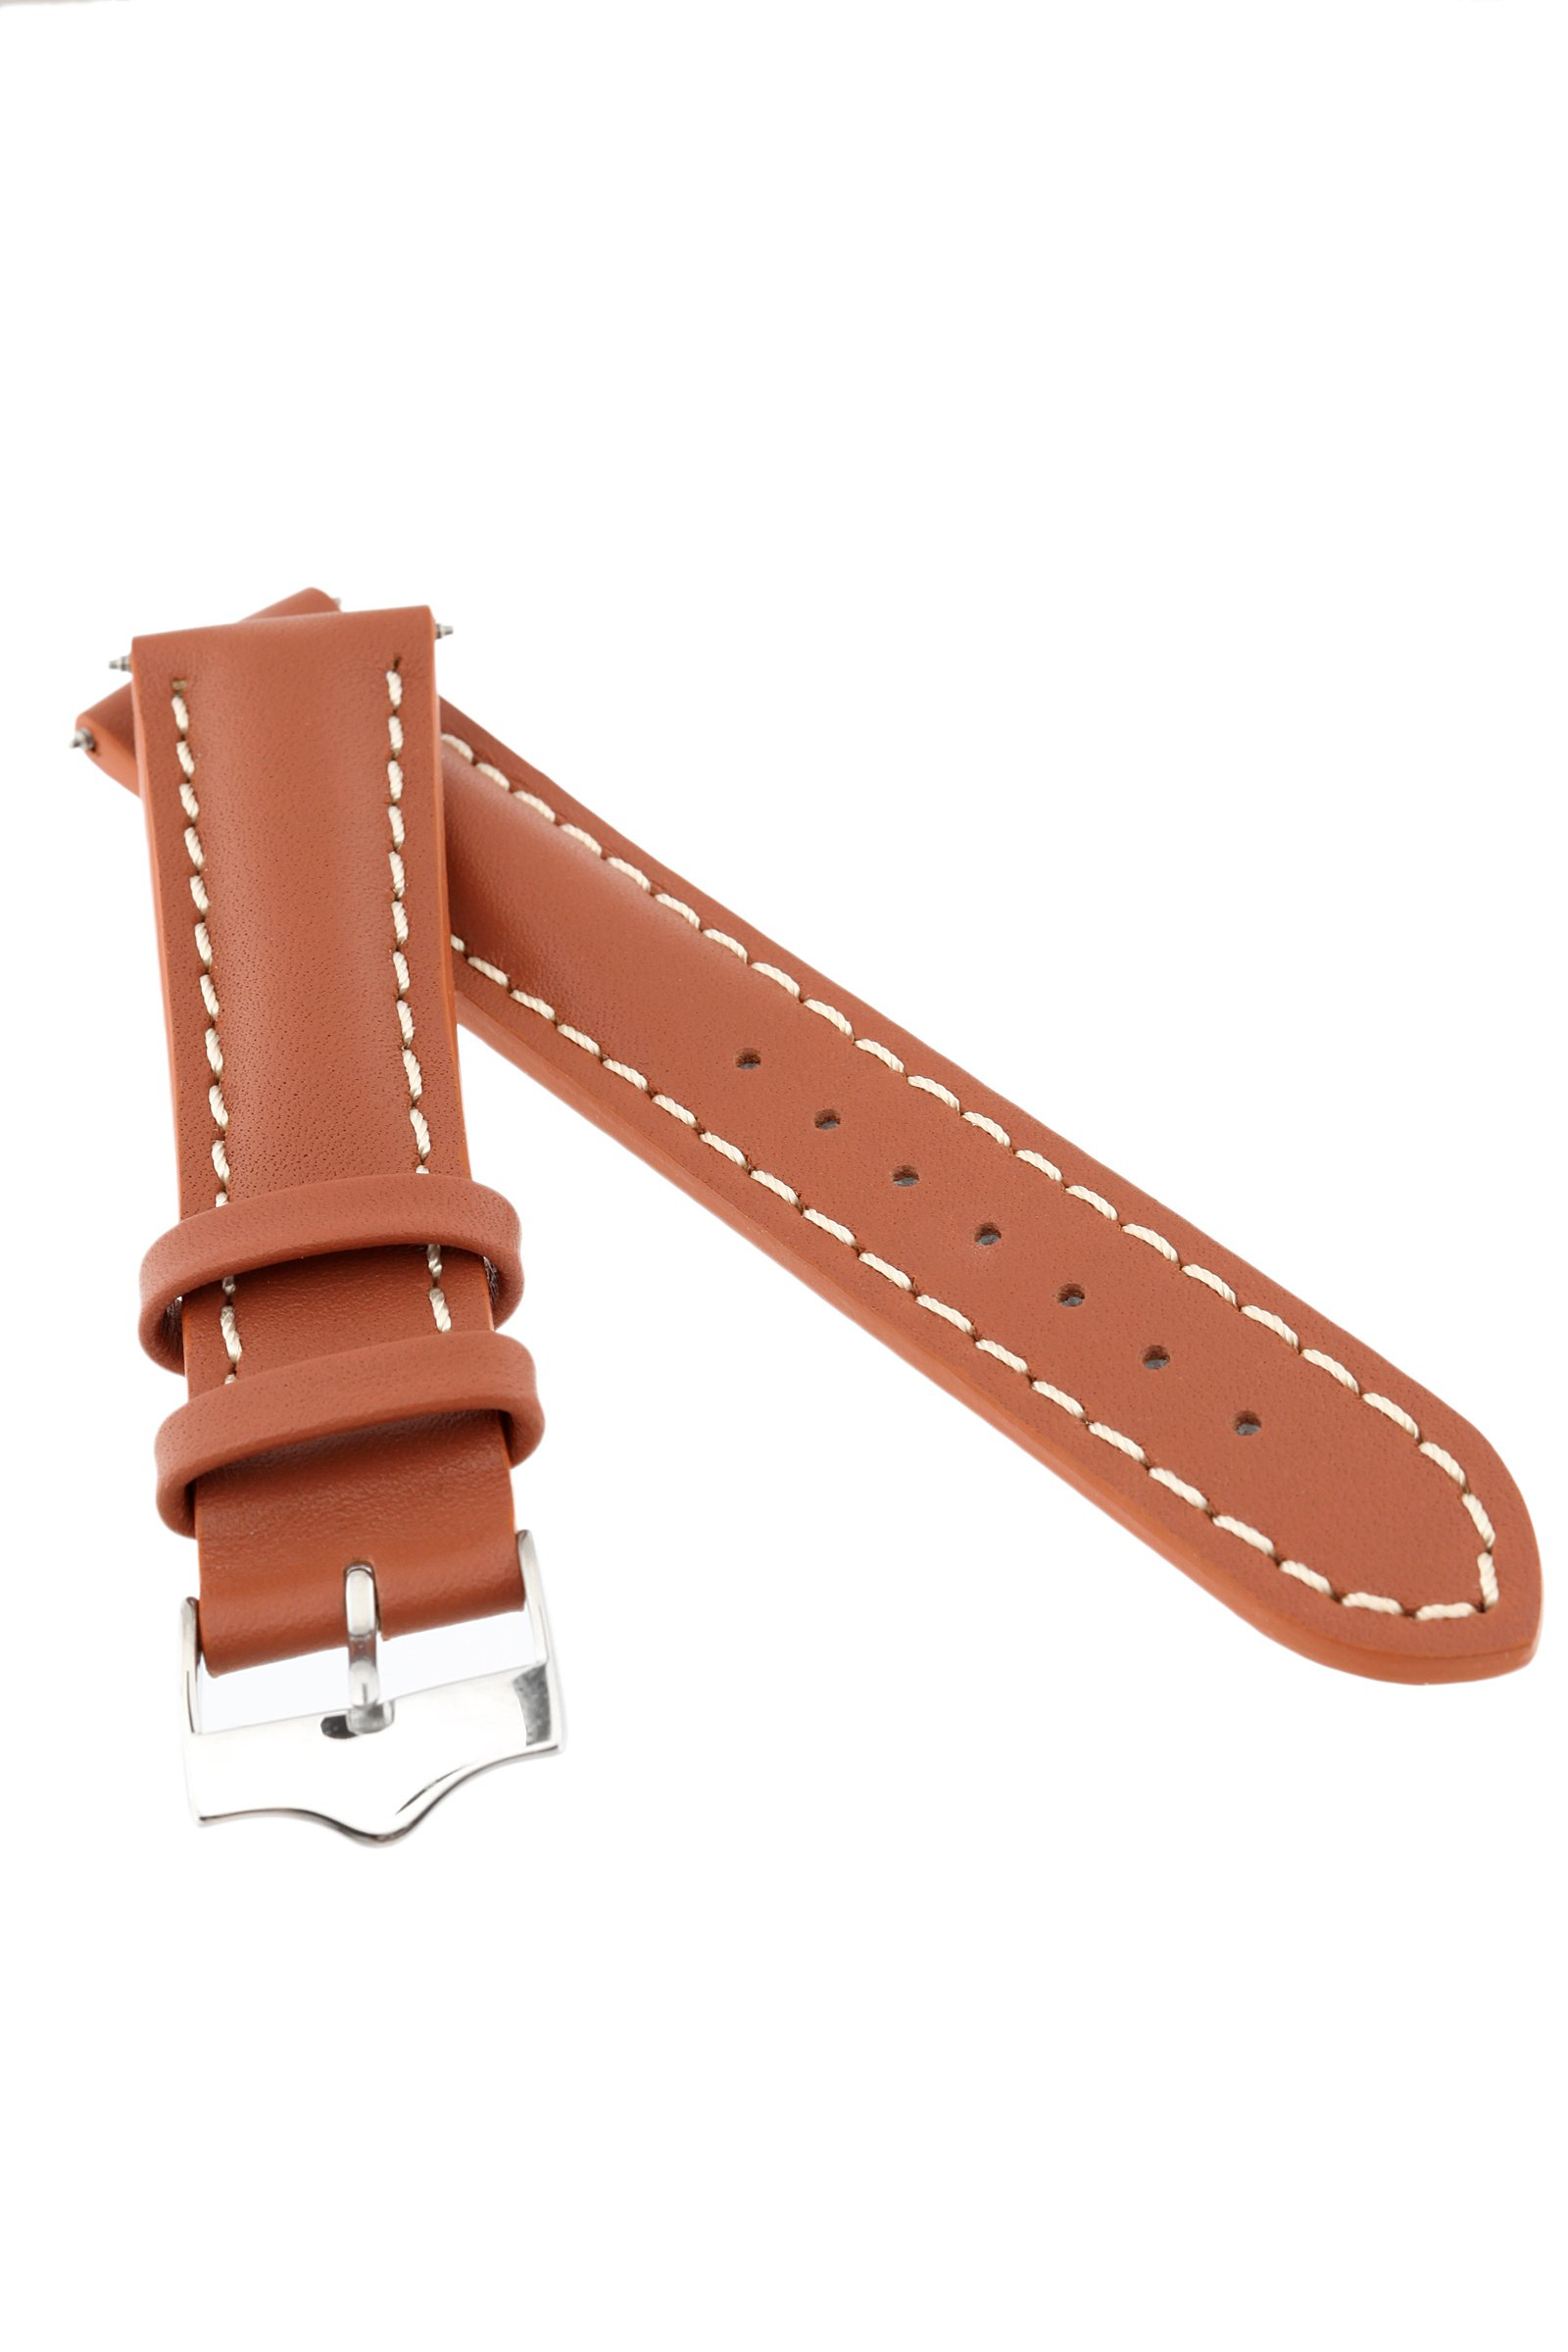 Signature Racing Wood 20 mm watch band. Replacement watch strap. Genuine Leather. Silver buckle by Signature (Image #3)